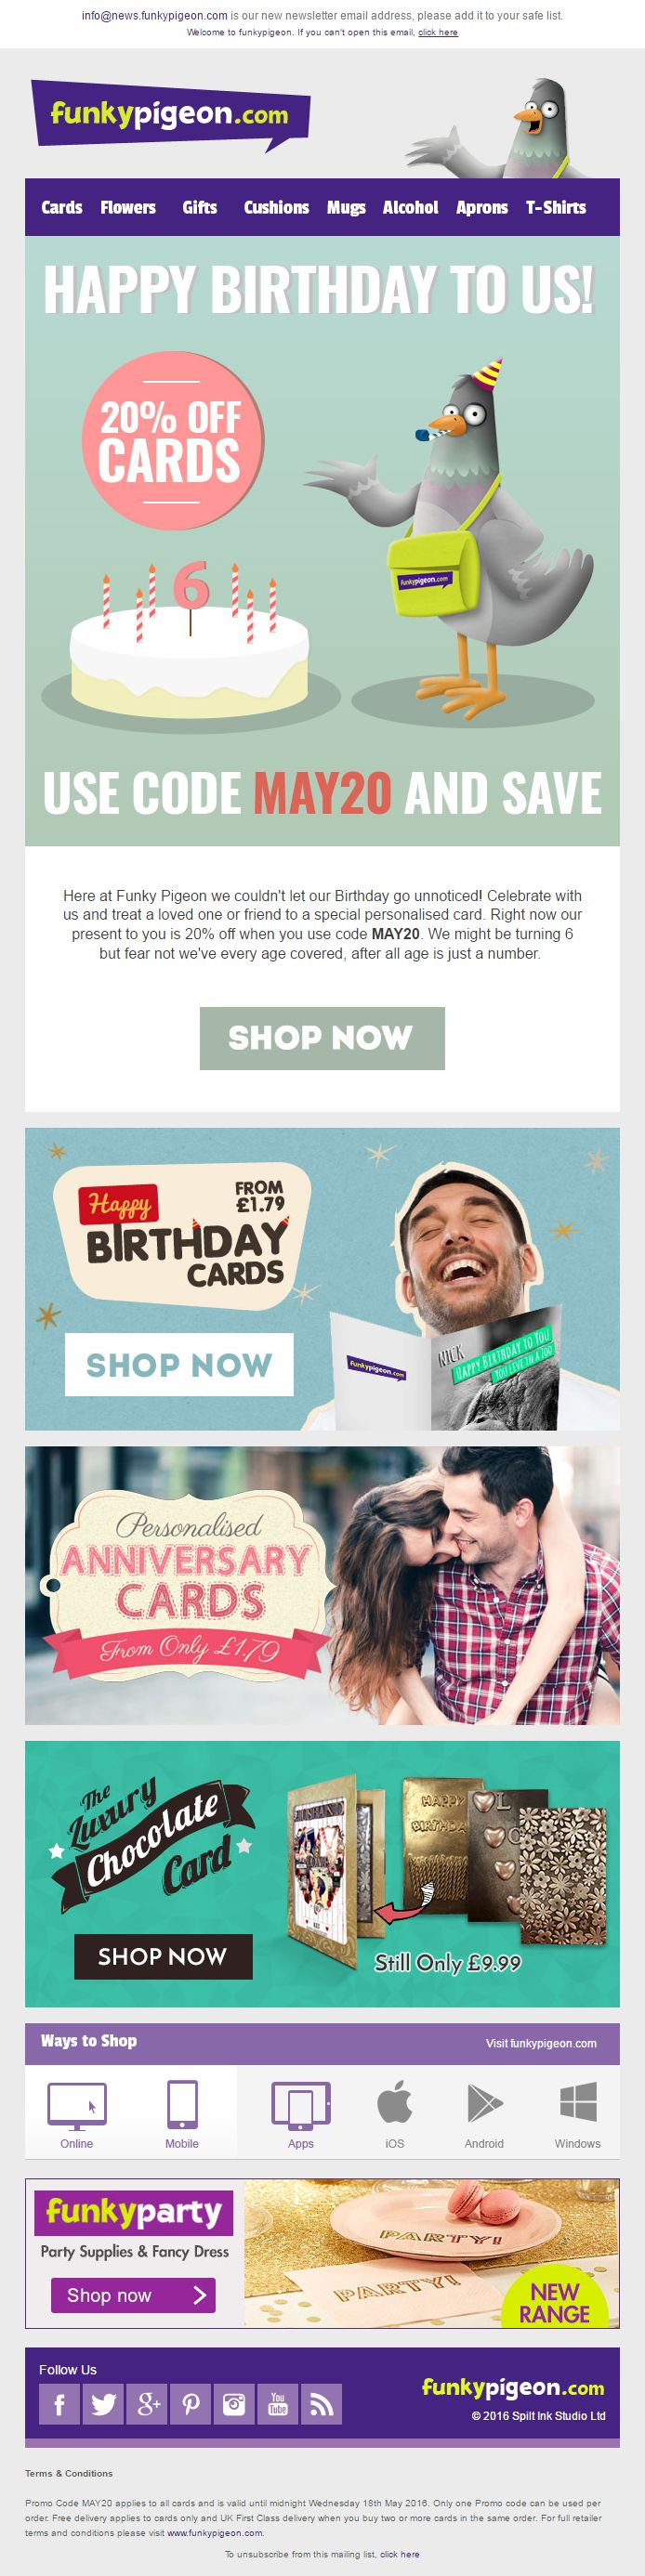 33 best competition emails images on pinterest email marketing funky pigeon email celebrating their birthday with a 20 off cards discount code emailmarketing fandeluxe Gallery